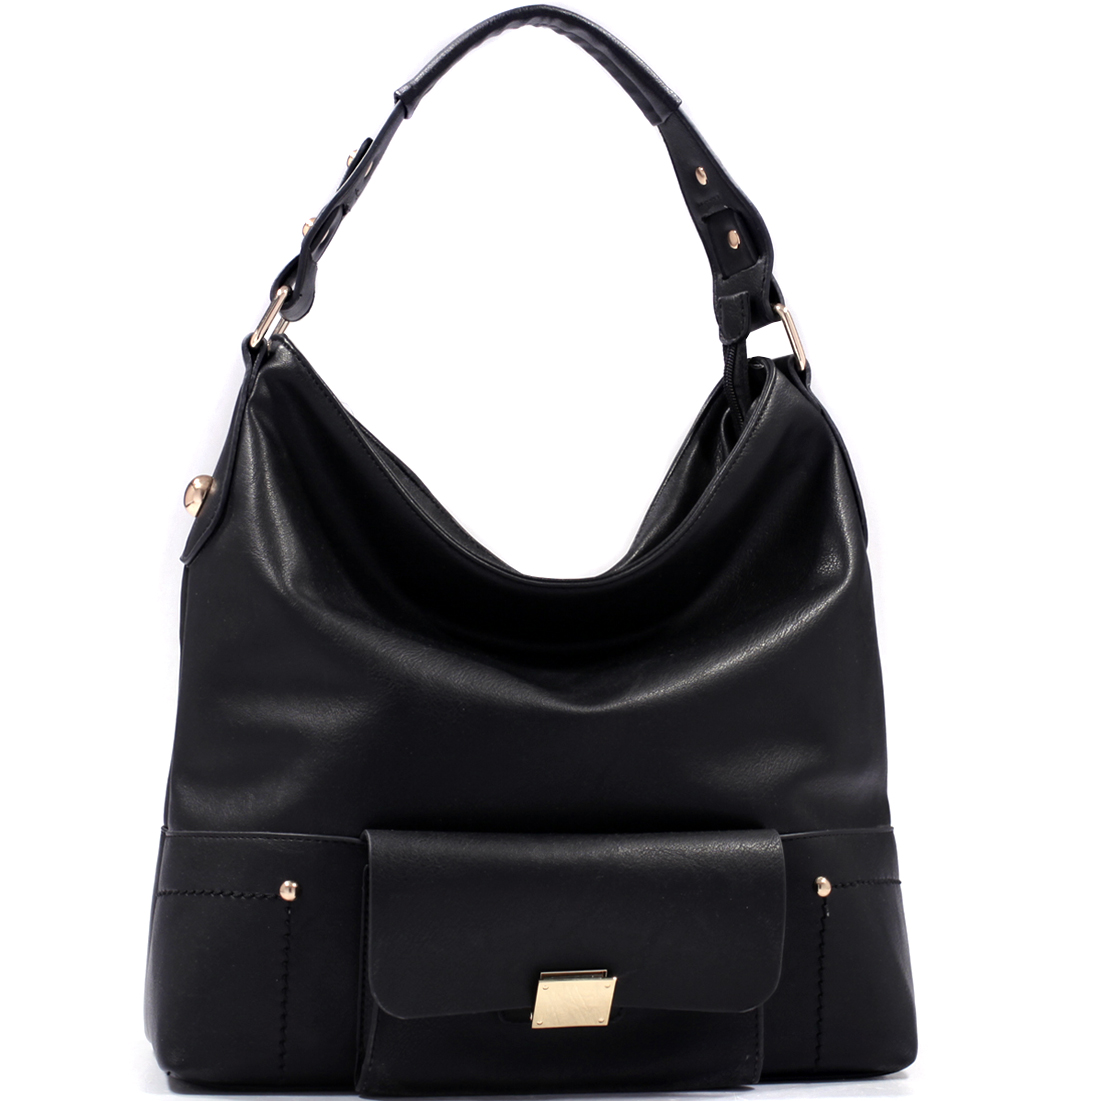 Classic Chic Hobo Bag